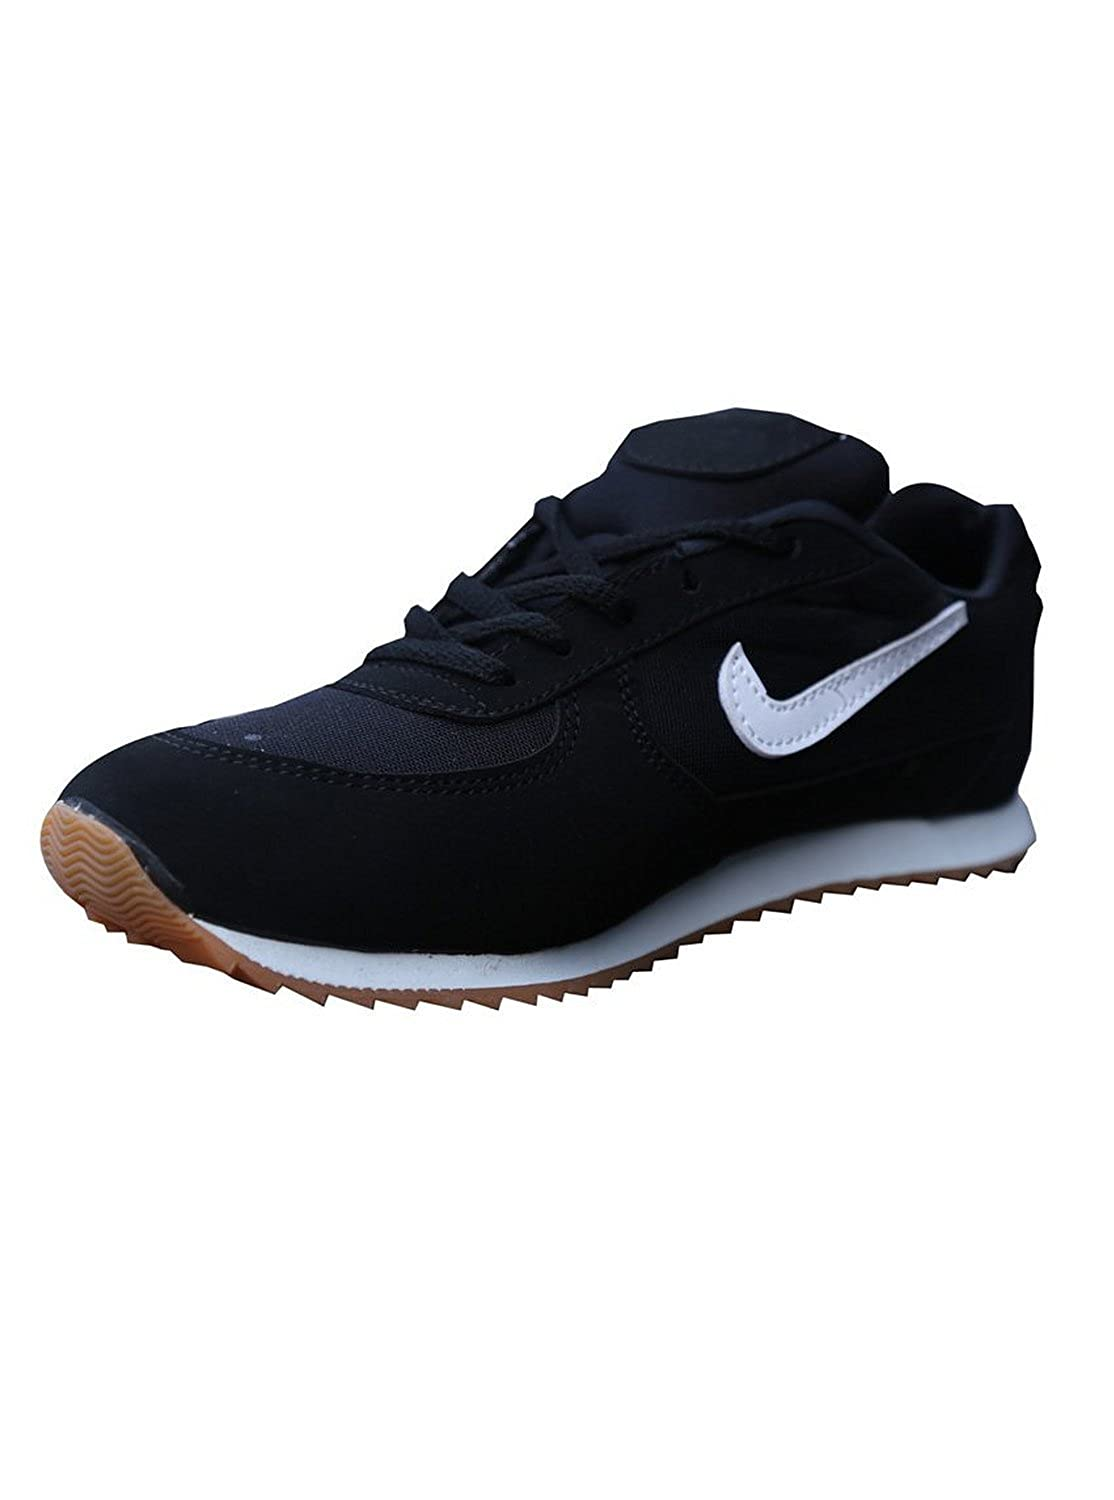 Women Sports Shoes - Clearance Sale discount offer  image 13